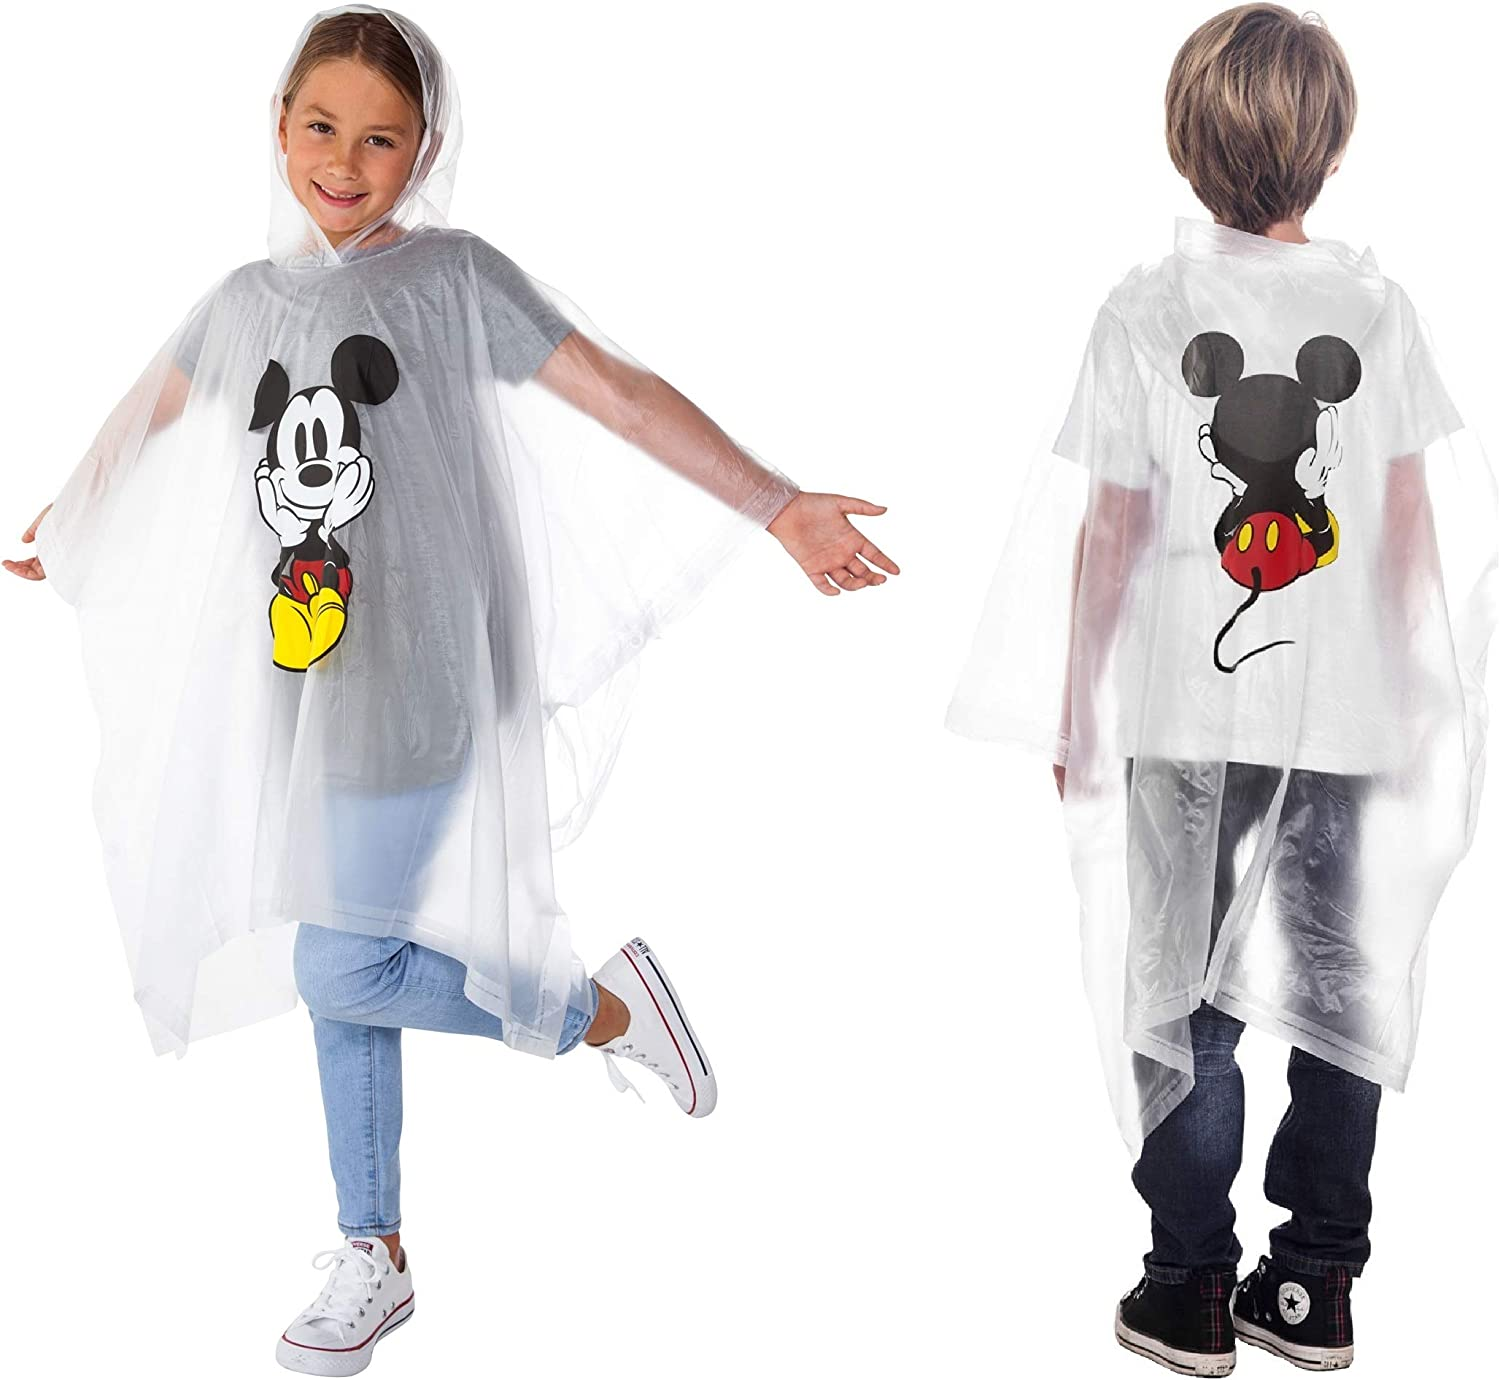 B00W0H1M0S Disney Mickey Mouse Rain Poncho Hoodie Front Back Print Youth 71l2IogY6yL